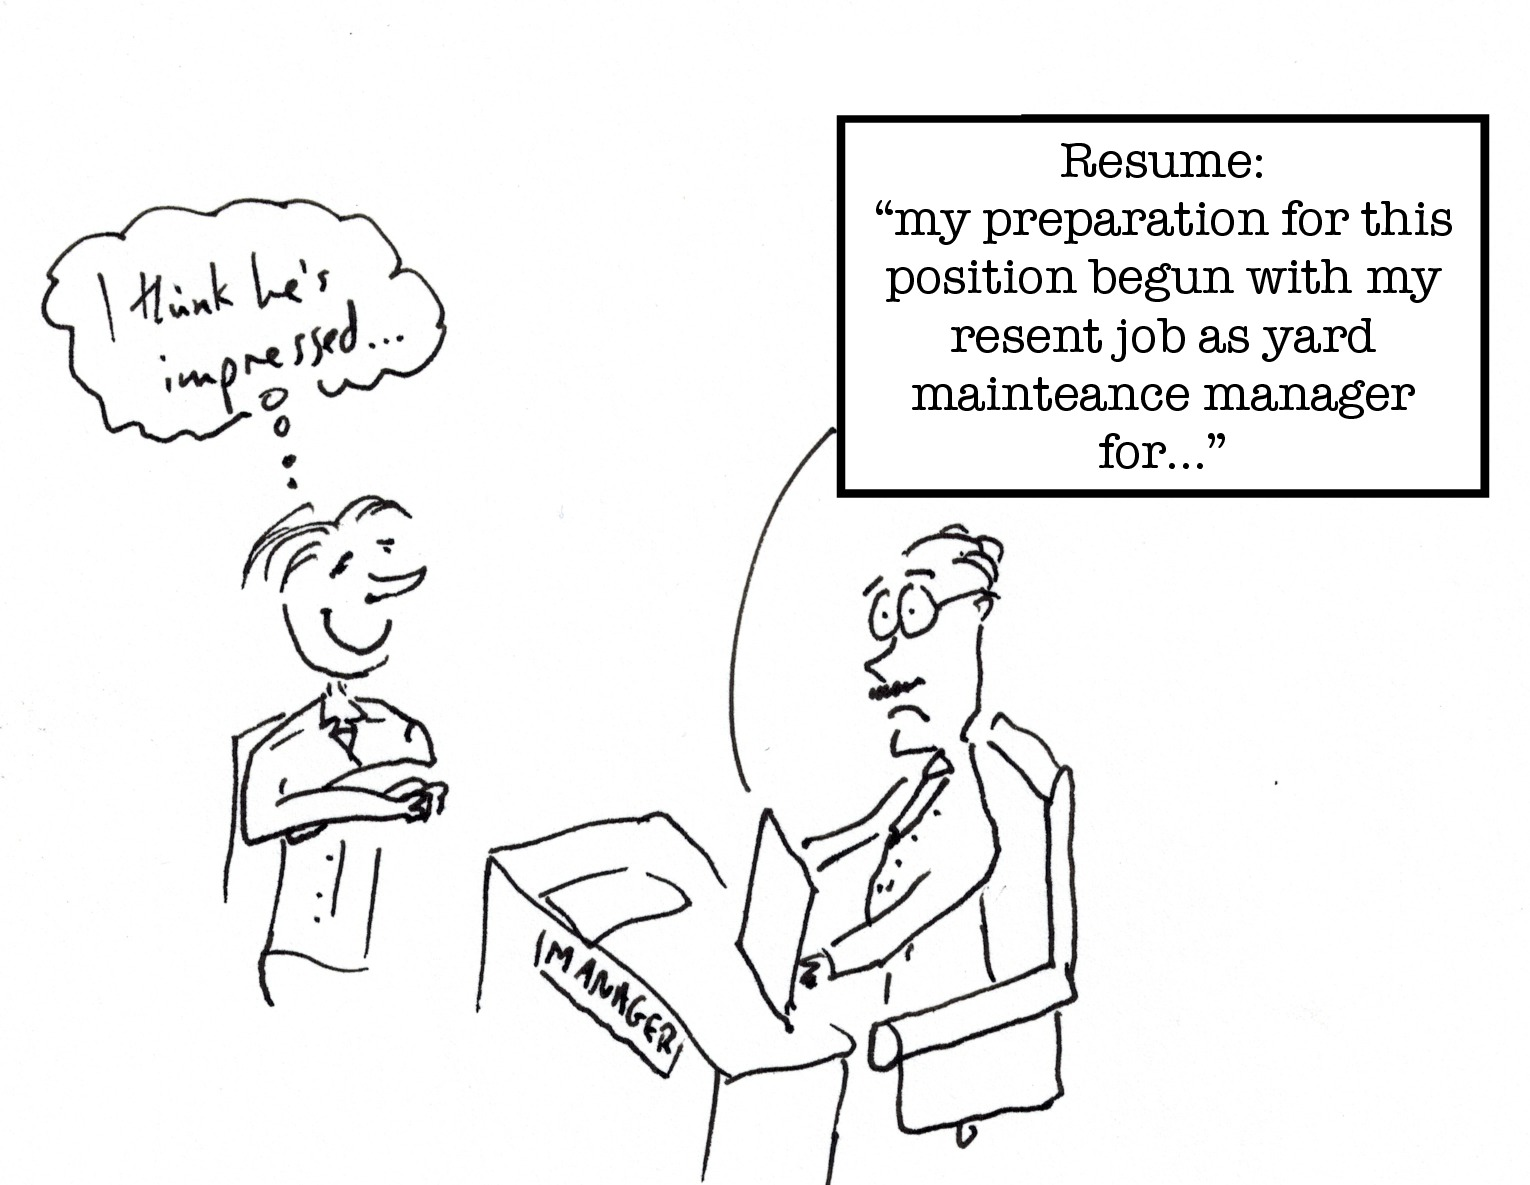 Misspelled words or grammatical mistakes on resumes or cover letters tank a first impression